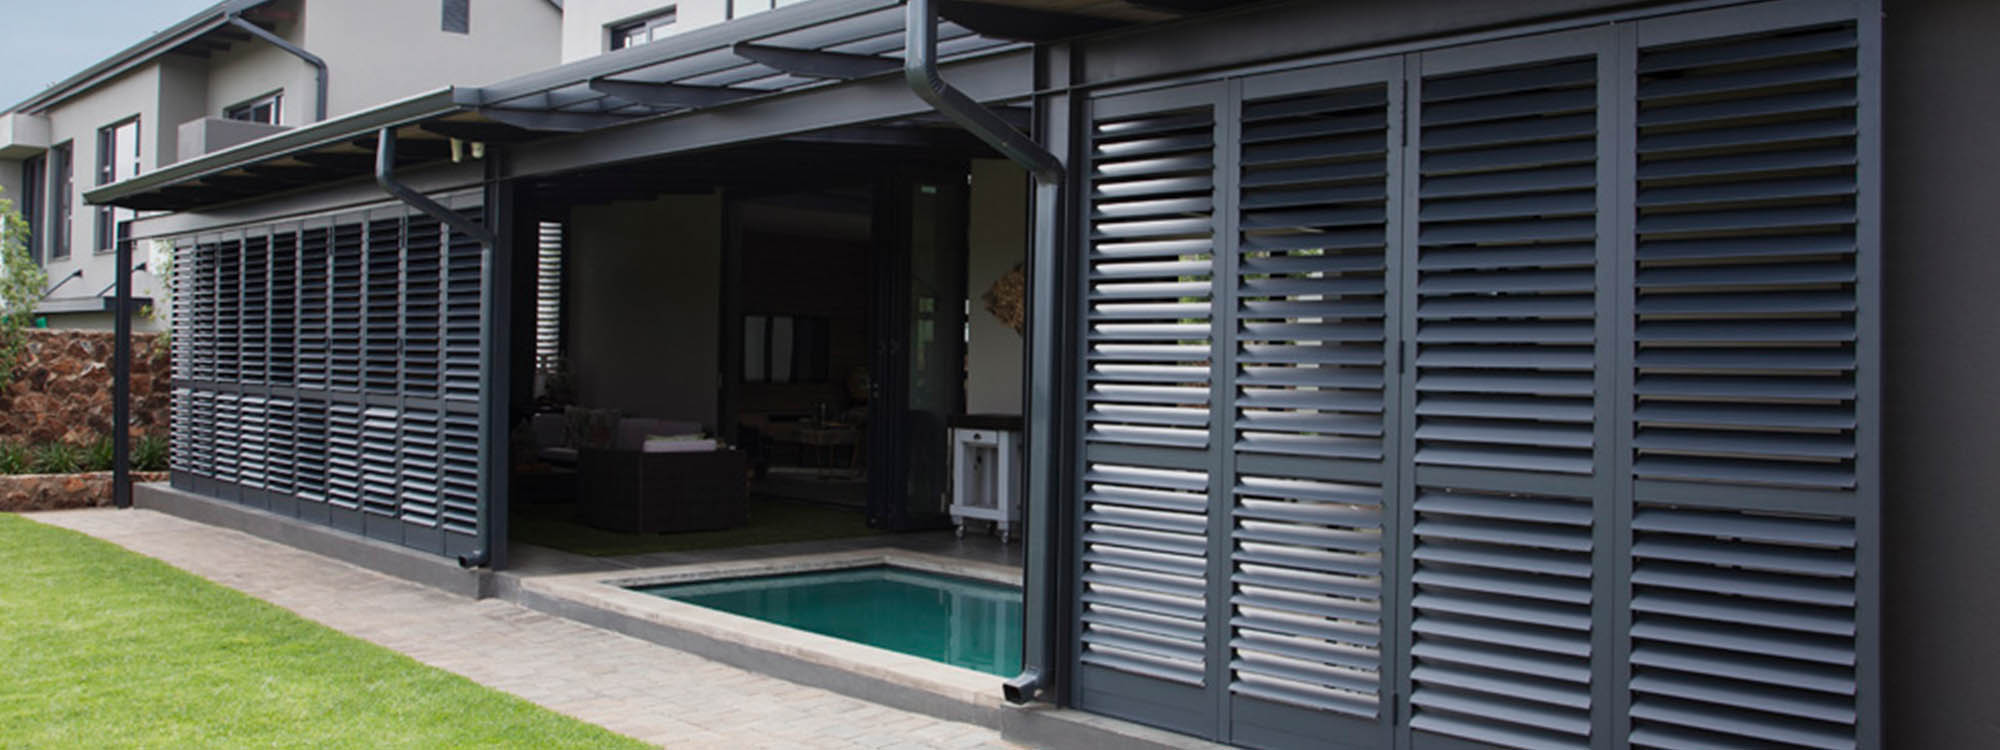 Security-shutters-patio-hinged-l-frames